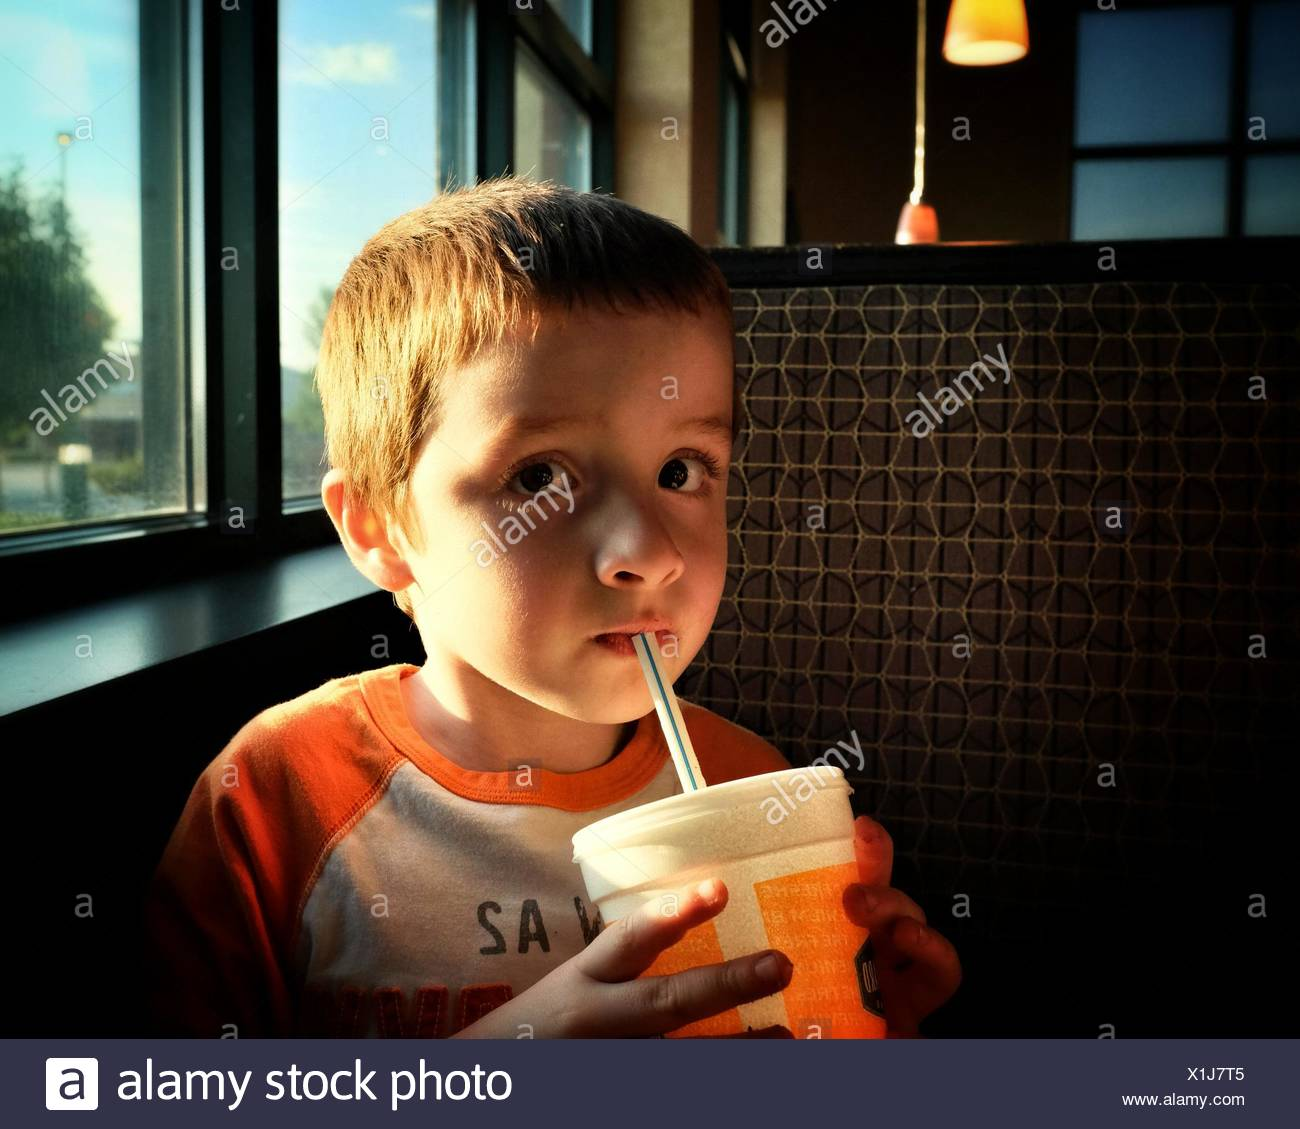 Close-Up Portrait Of Cute Boy Drinking While Sitting In Restaurant Stock Photo